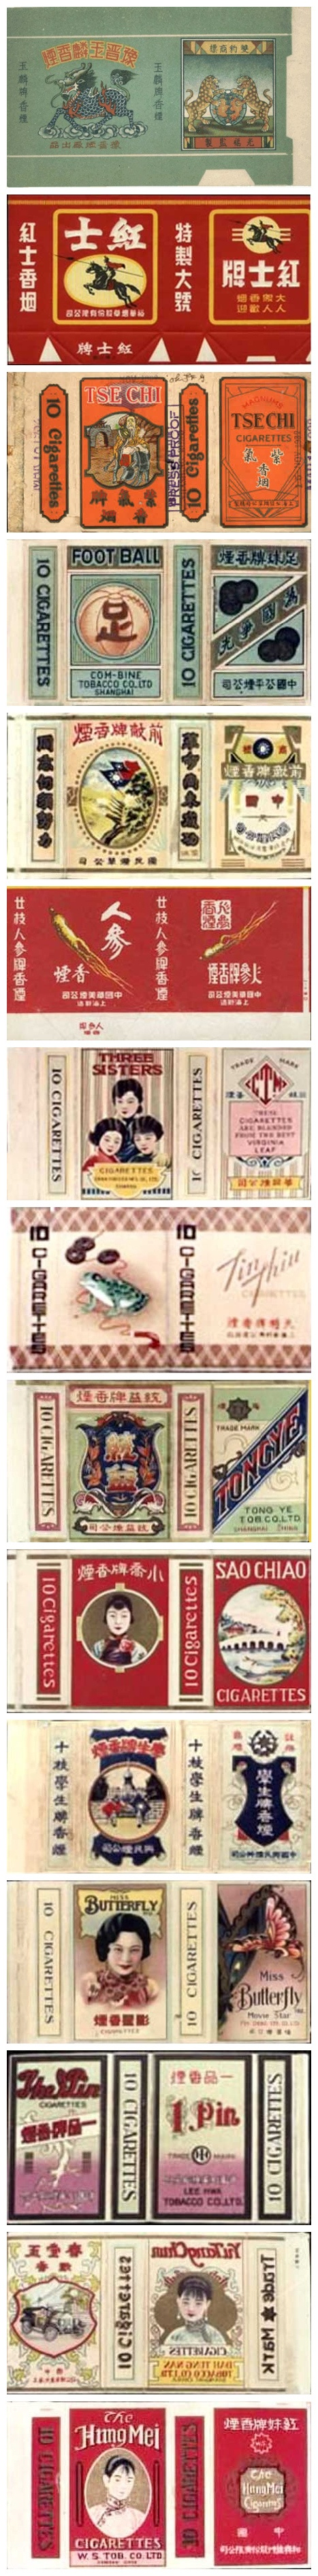 More Chinese Cigarette Packaging